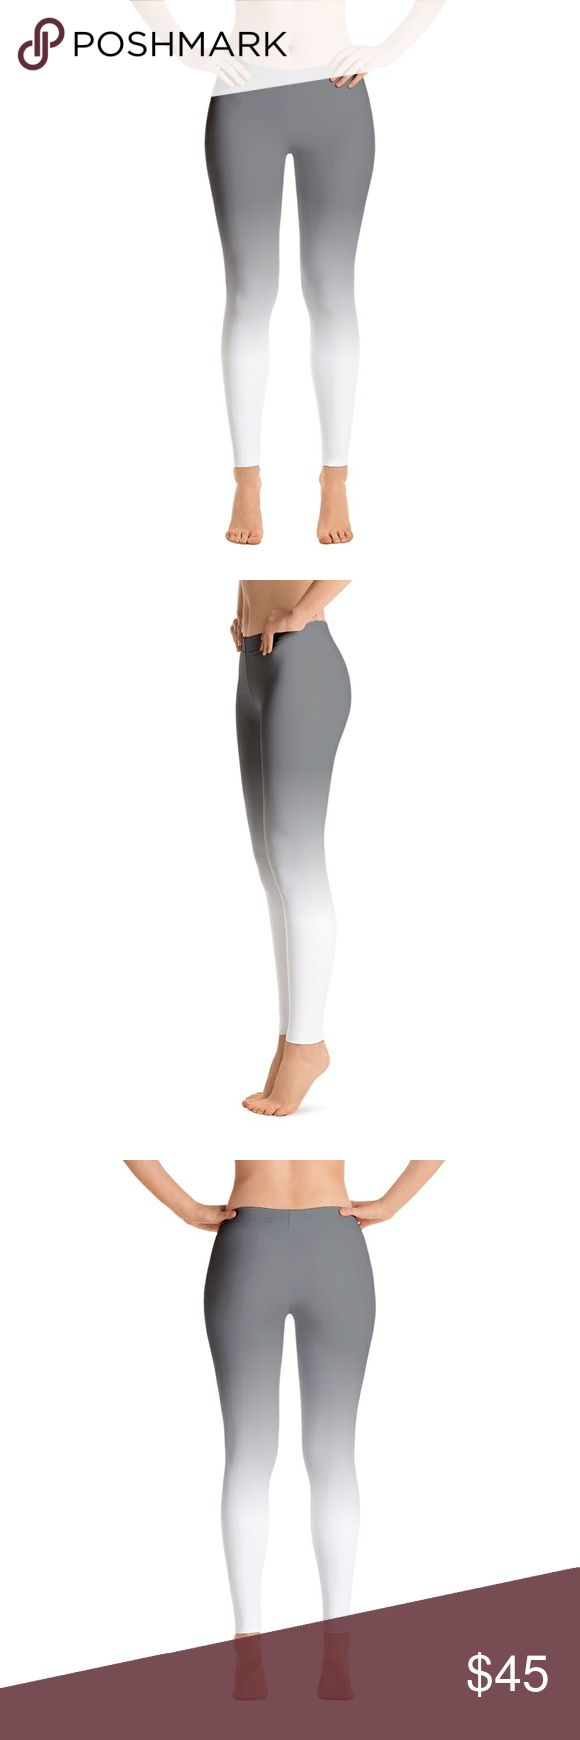 Grey and White Ombre Leggings Simple, yet still keeps you look stylish when you want to.   Stylish, durable, and a hot fashion staple. These polyester/spandex leggings are made of a comfortable microfiber yarn, and they'll never lose their stretch.   Sizing chart is in the photos.  Details:  Fabric: 82% polyester, 18% spandex? Four-way stretch, which means fabric stretches and recovers both on the cross and lengthwise grains Made of a microfiber yarn, which is smooth and comfortable Elastic…